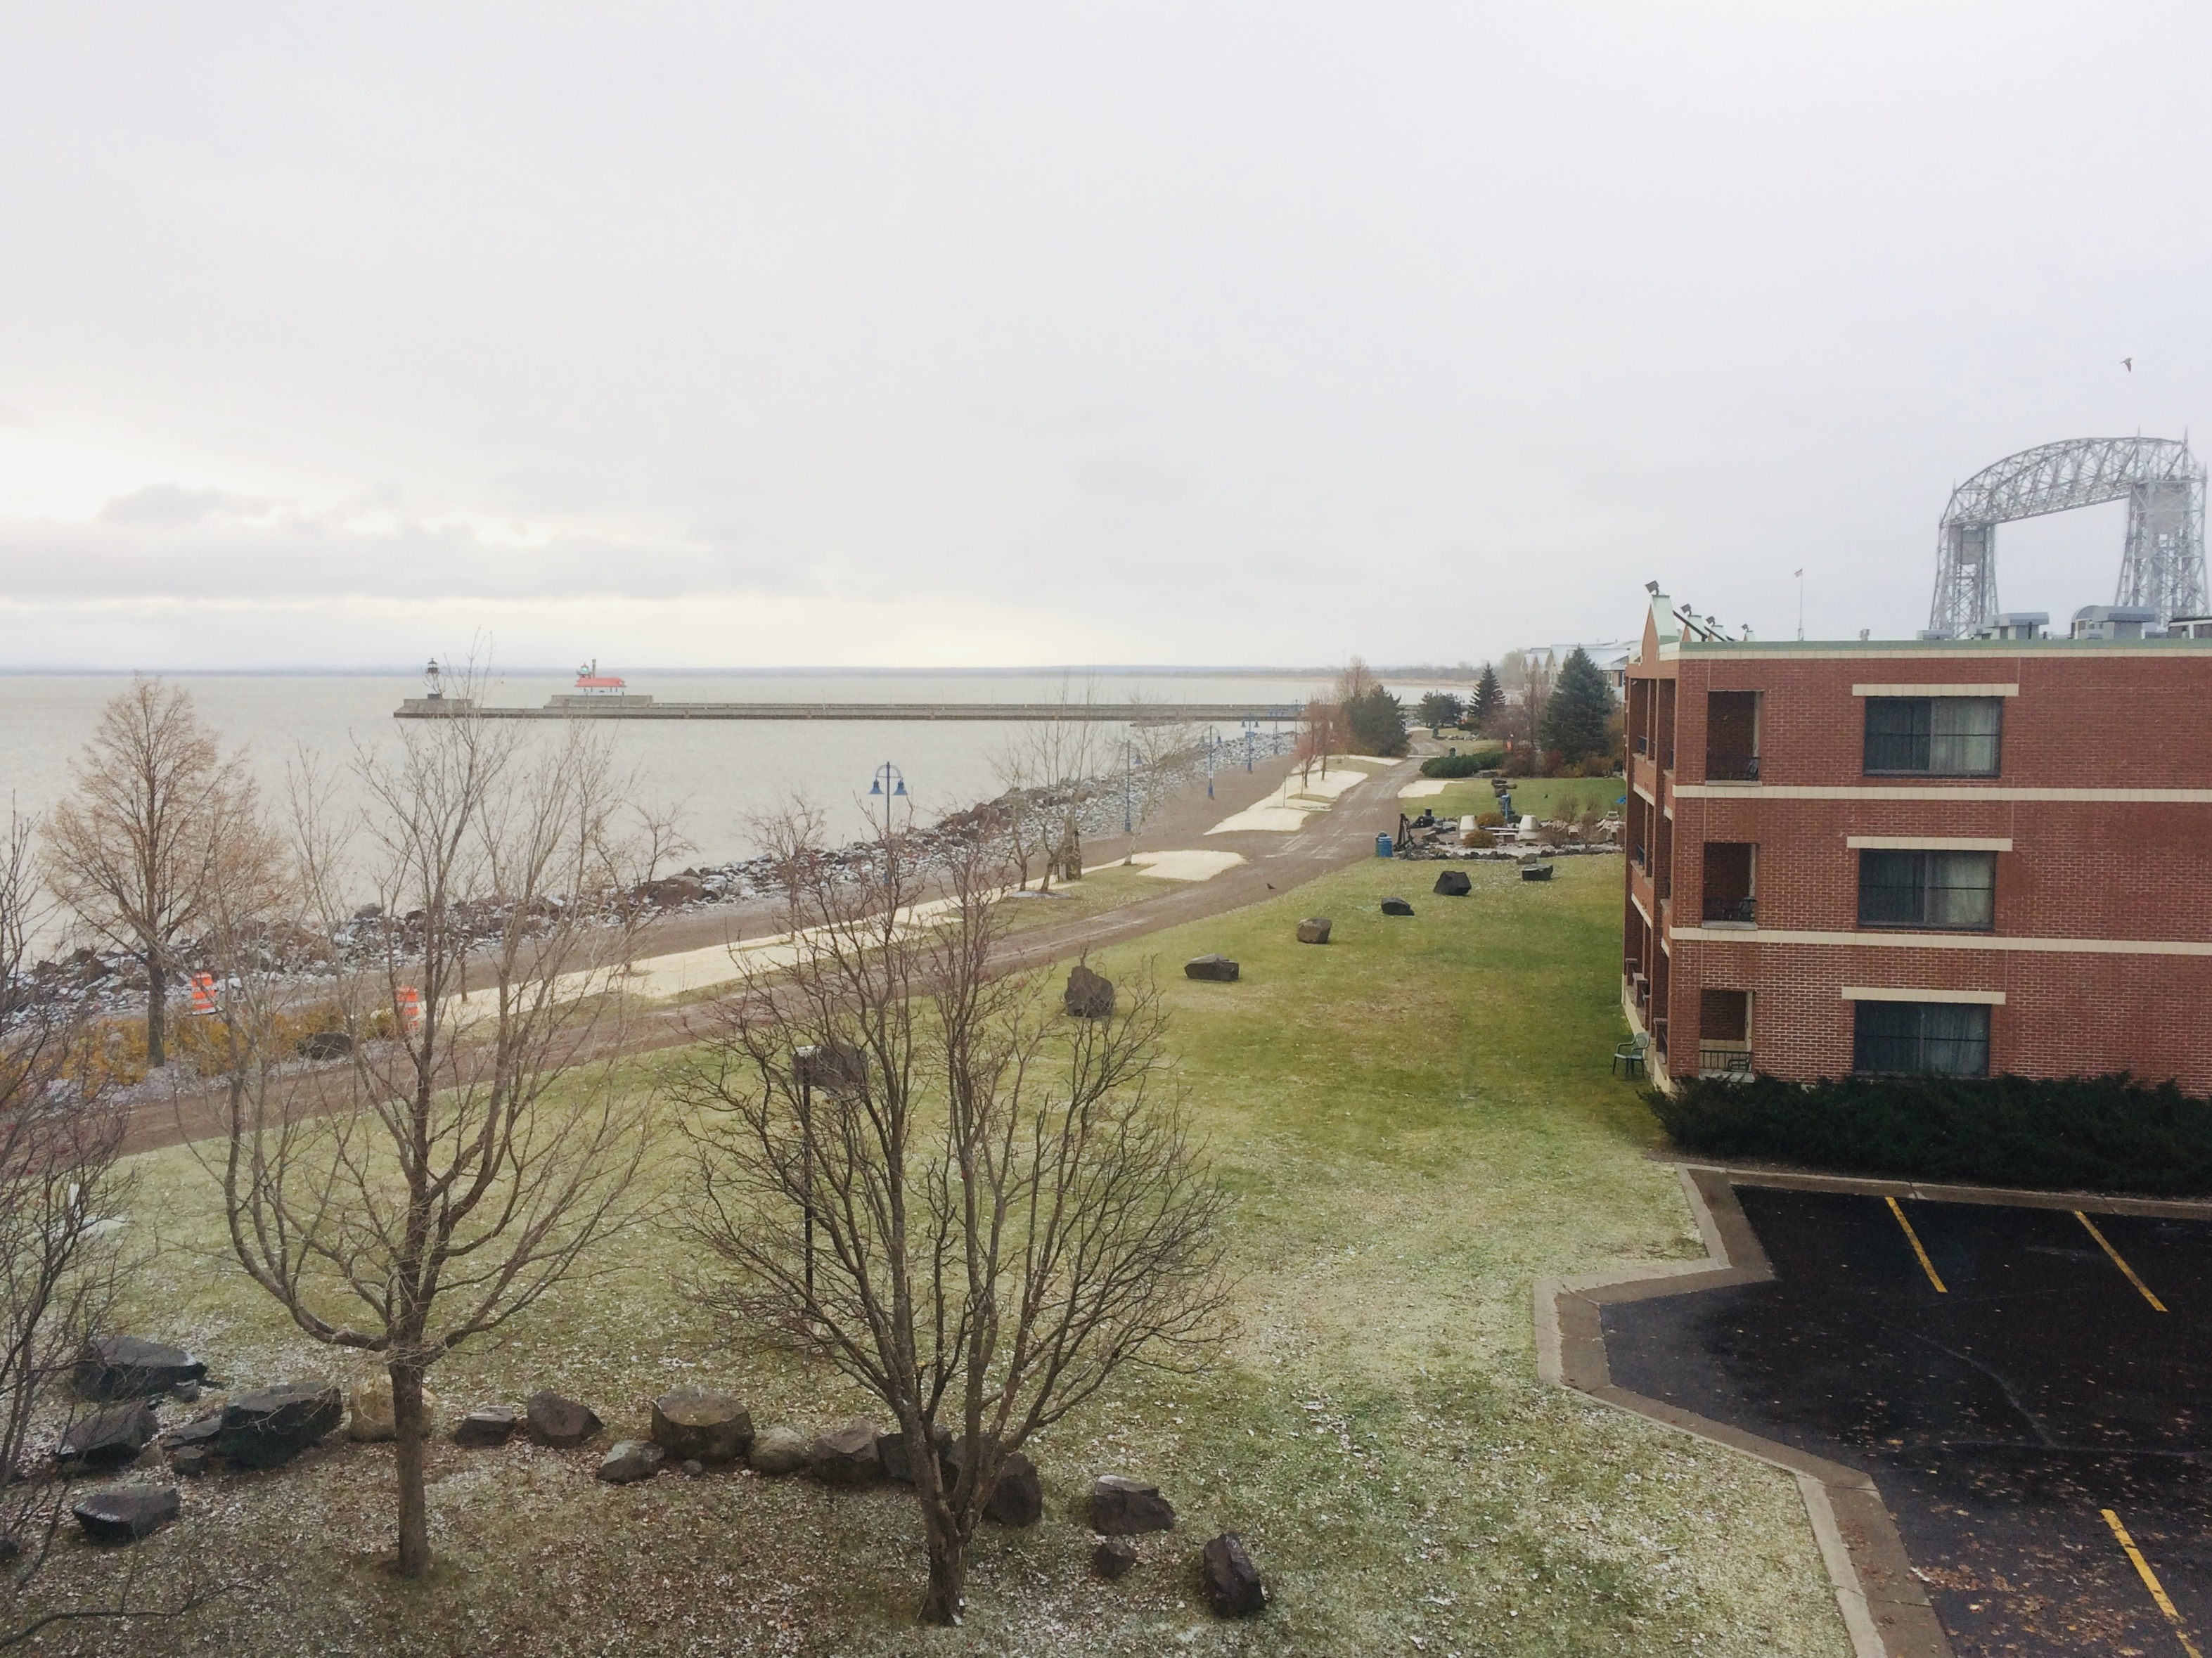 Duluth_Waterfront2.jpg